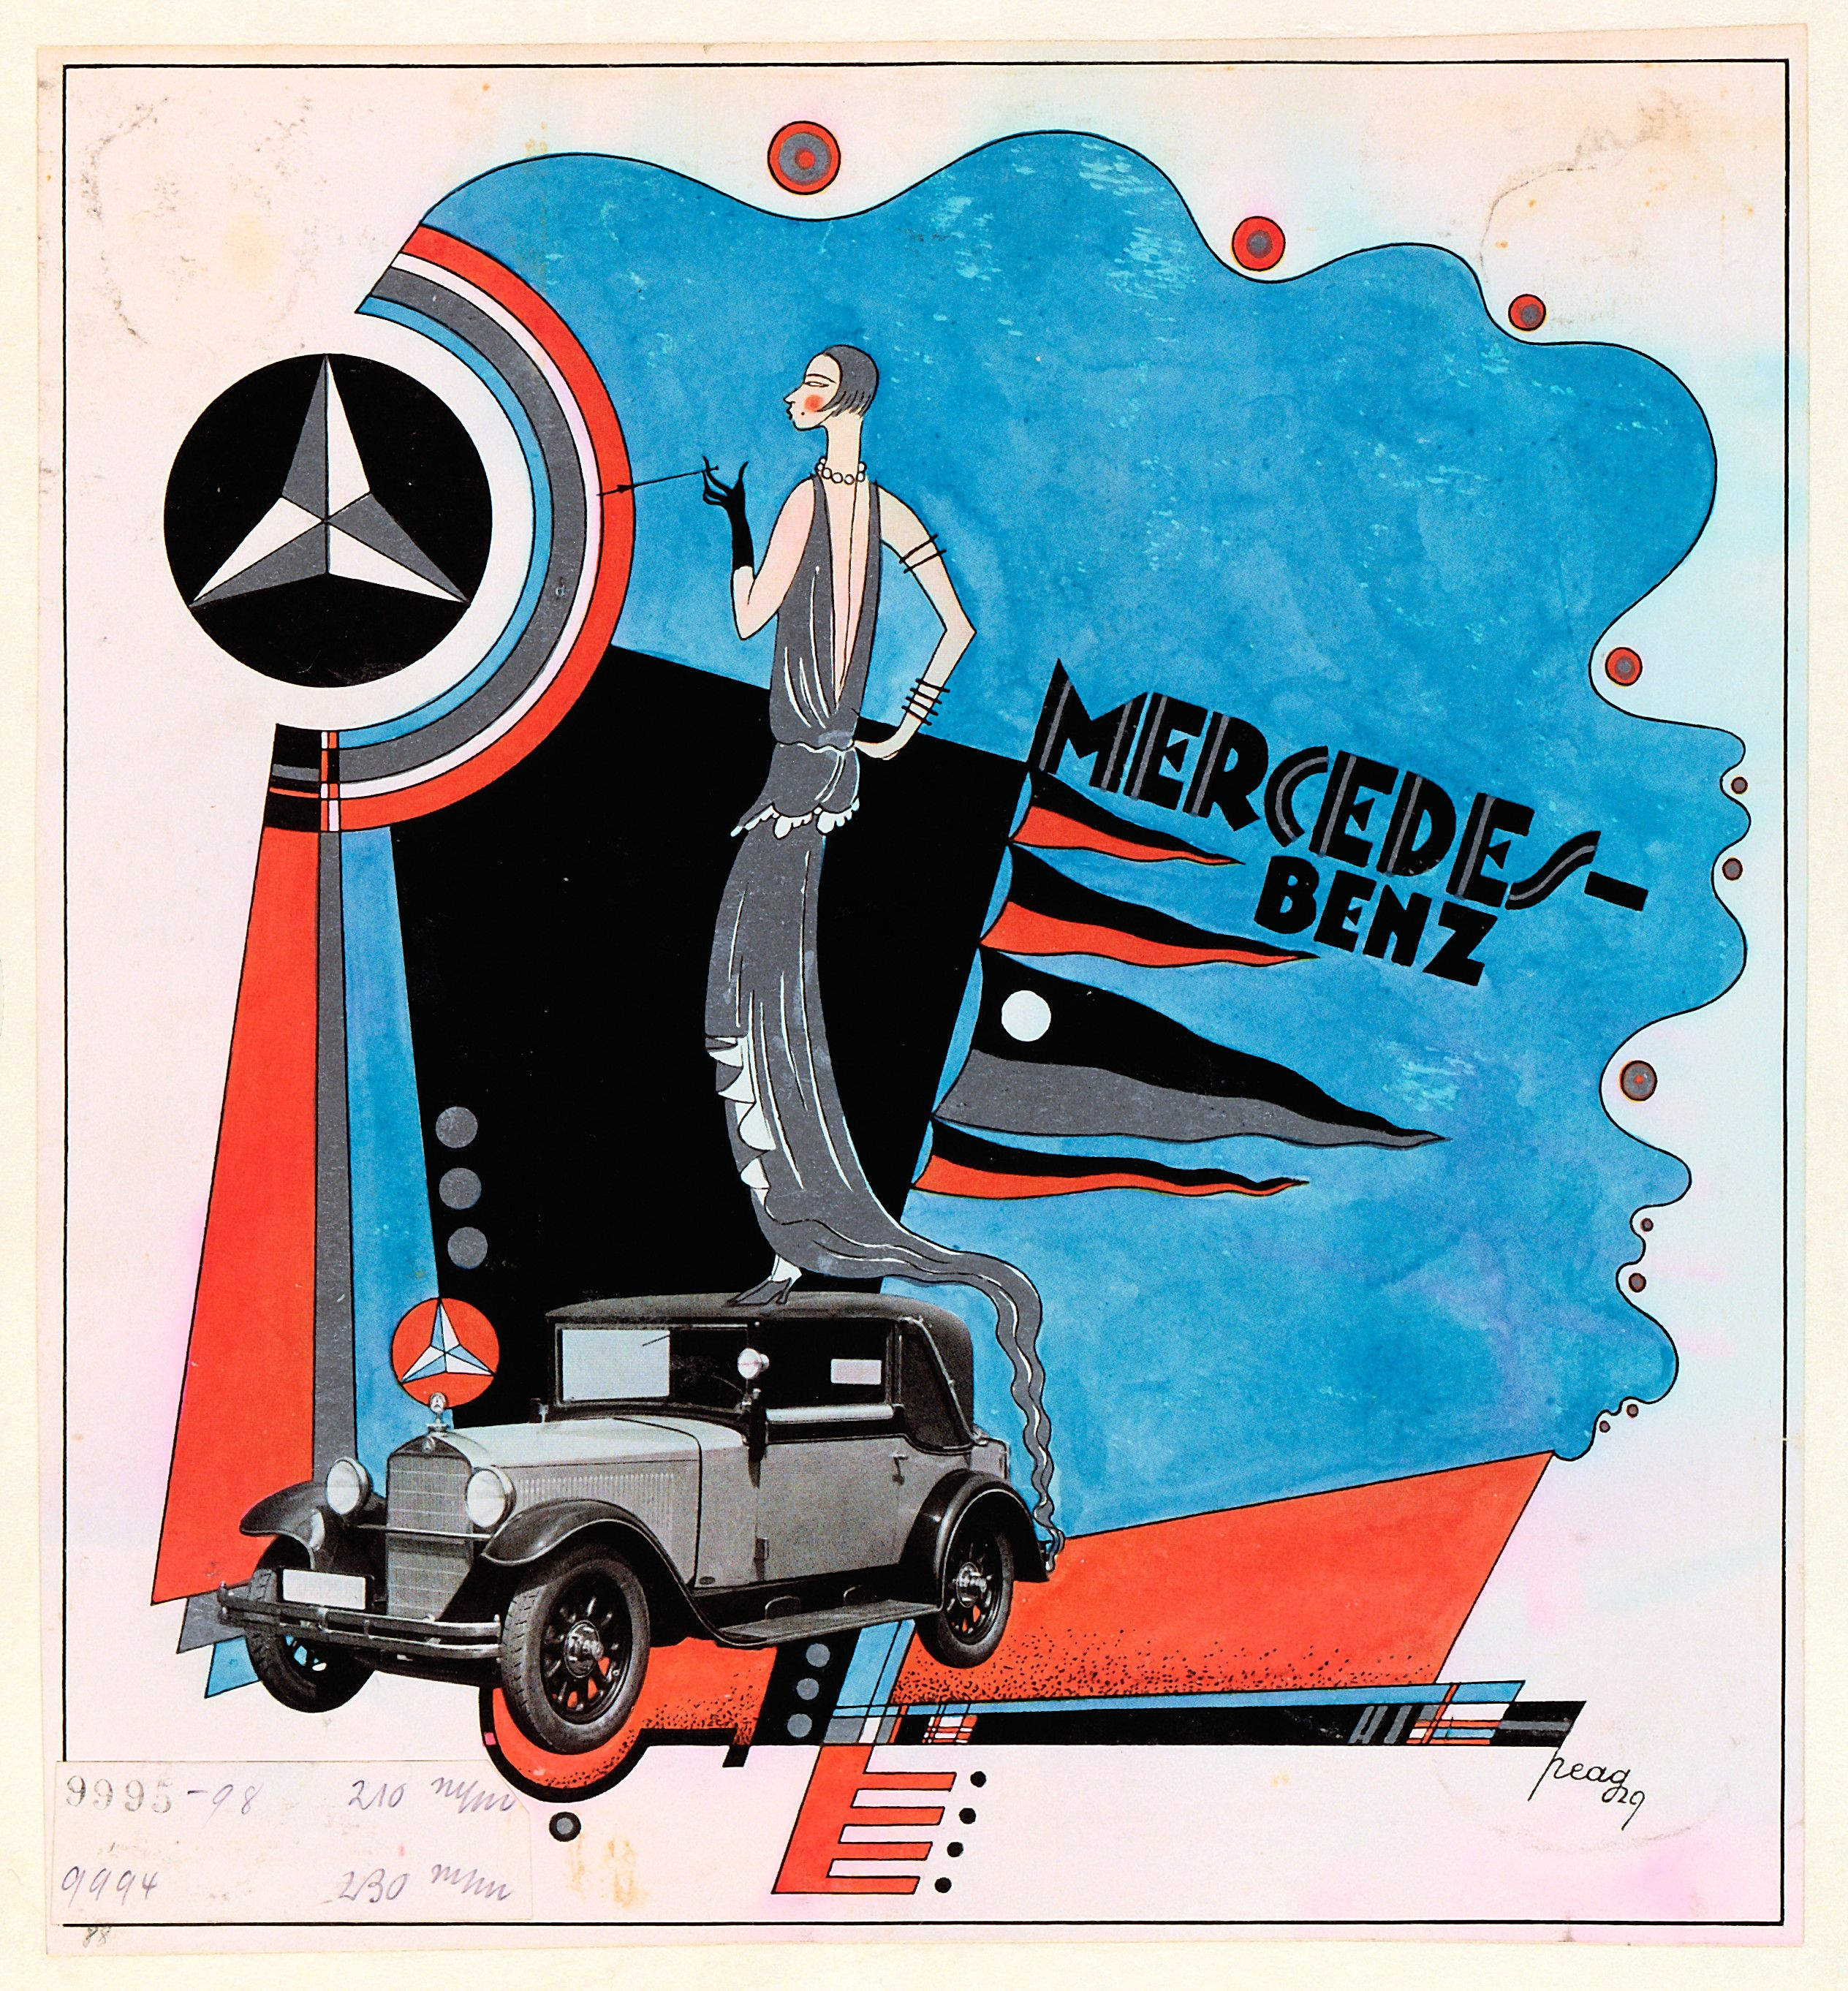 Mercedes Benz Vintage Ad This Draft Advertisement From 1929 Peag Takes Up Elements Of Constructivism And Anuncios De Coches Coches Clasicos Anuncios Vintage